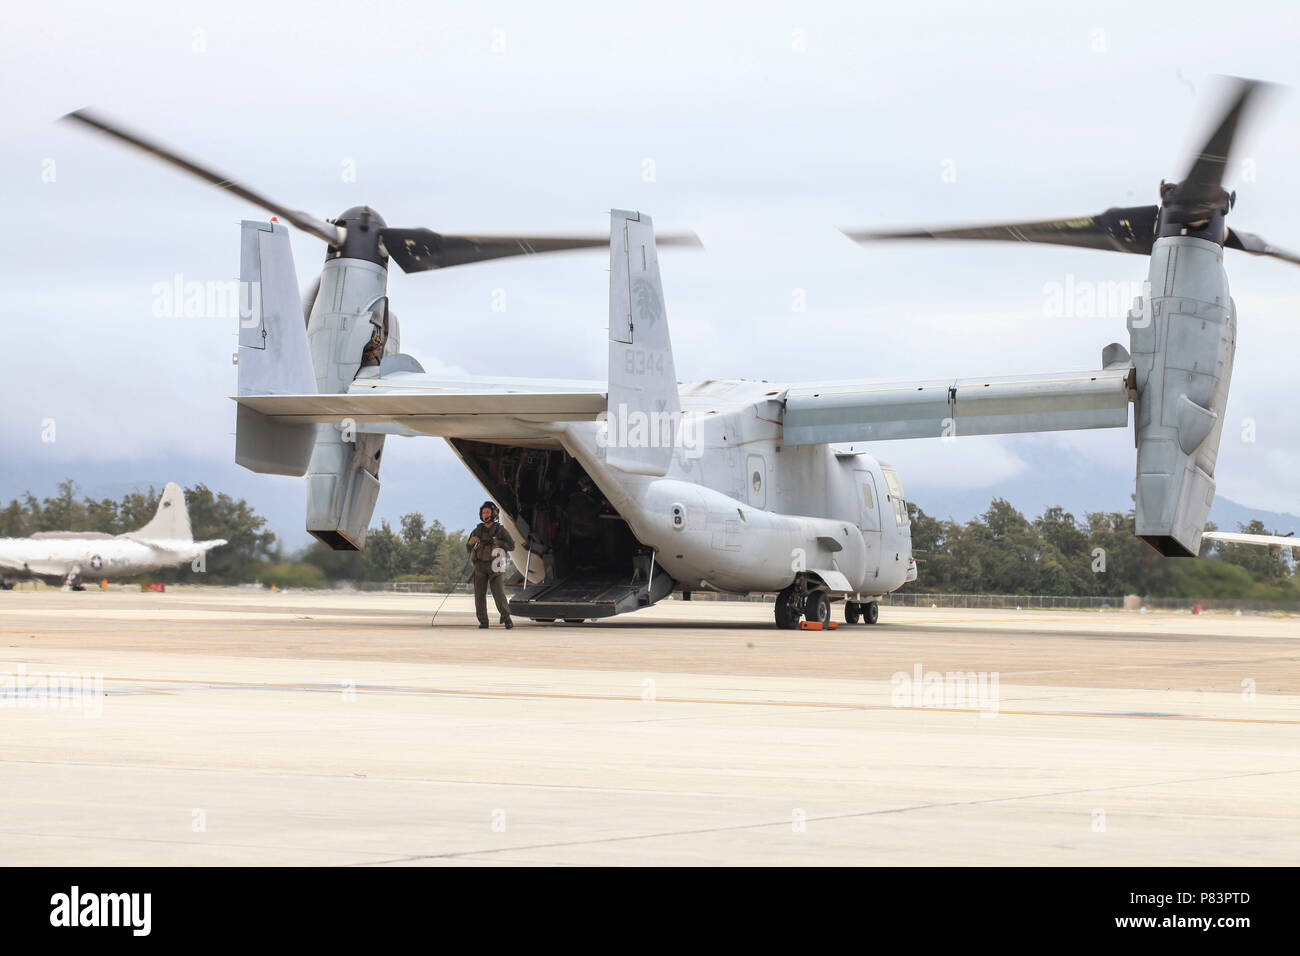 An MV-22B Osprey assigned to Marine Medium Tiltrotor Squadron 363 (VMM-363) prepares to disembark its crew after arriving on Marine Corps Air Station Kaneohe Bay, Marine Corps Base Hawaii, July 7, 2018. MV-22B Ospreys assigned to VMM-363 is part of the squadron's scheduled relocation to their new command, Marine Aircraft Group 24, 1st Marine Aircraft Wing. VMM-363's capabilities will significantly enhance the Marine Corps' ability to perform humanitarian assistance and disaster response, respond to crises and fulfill other alliance roles in the Indo-Pacific region. Decisions regarding the arri Stock Photo